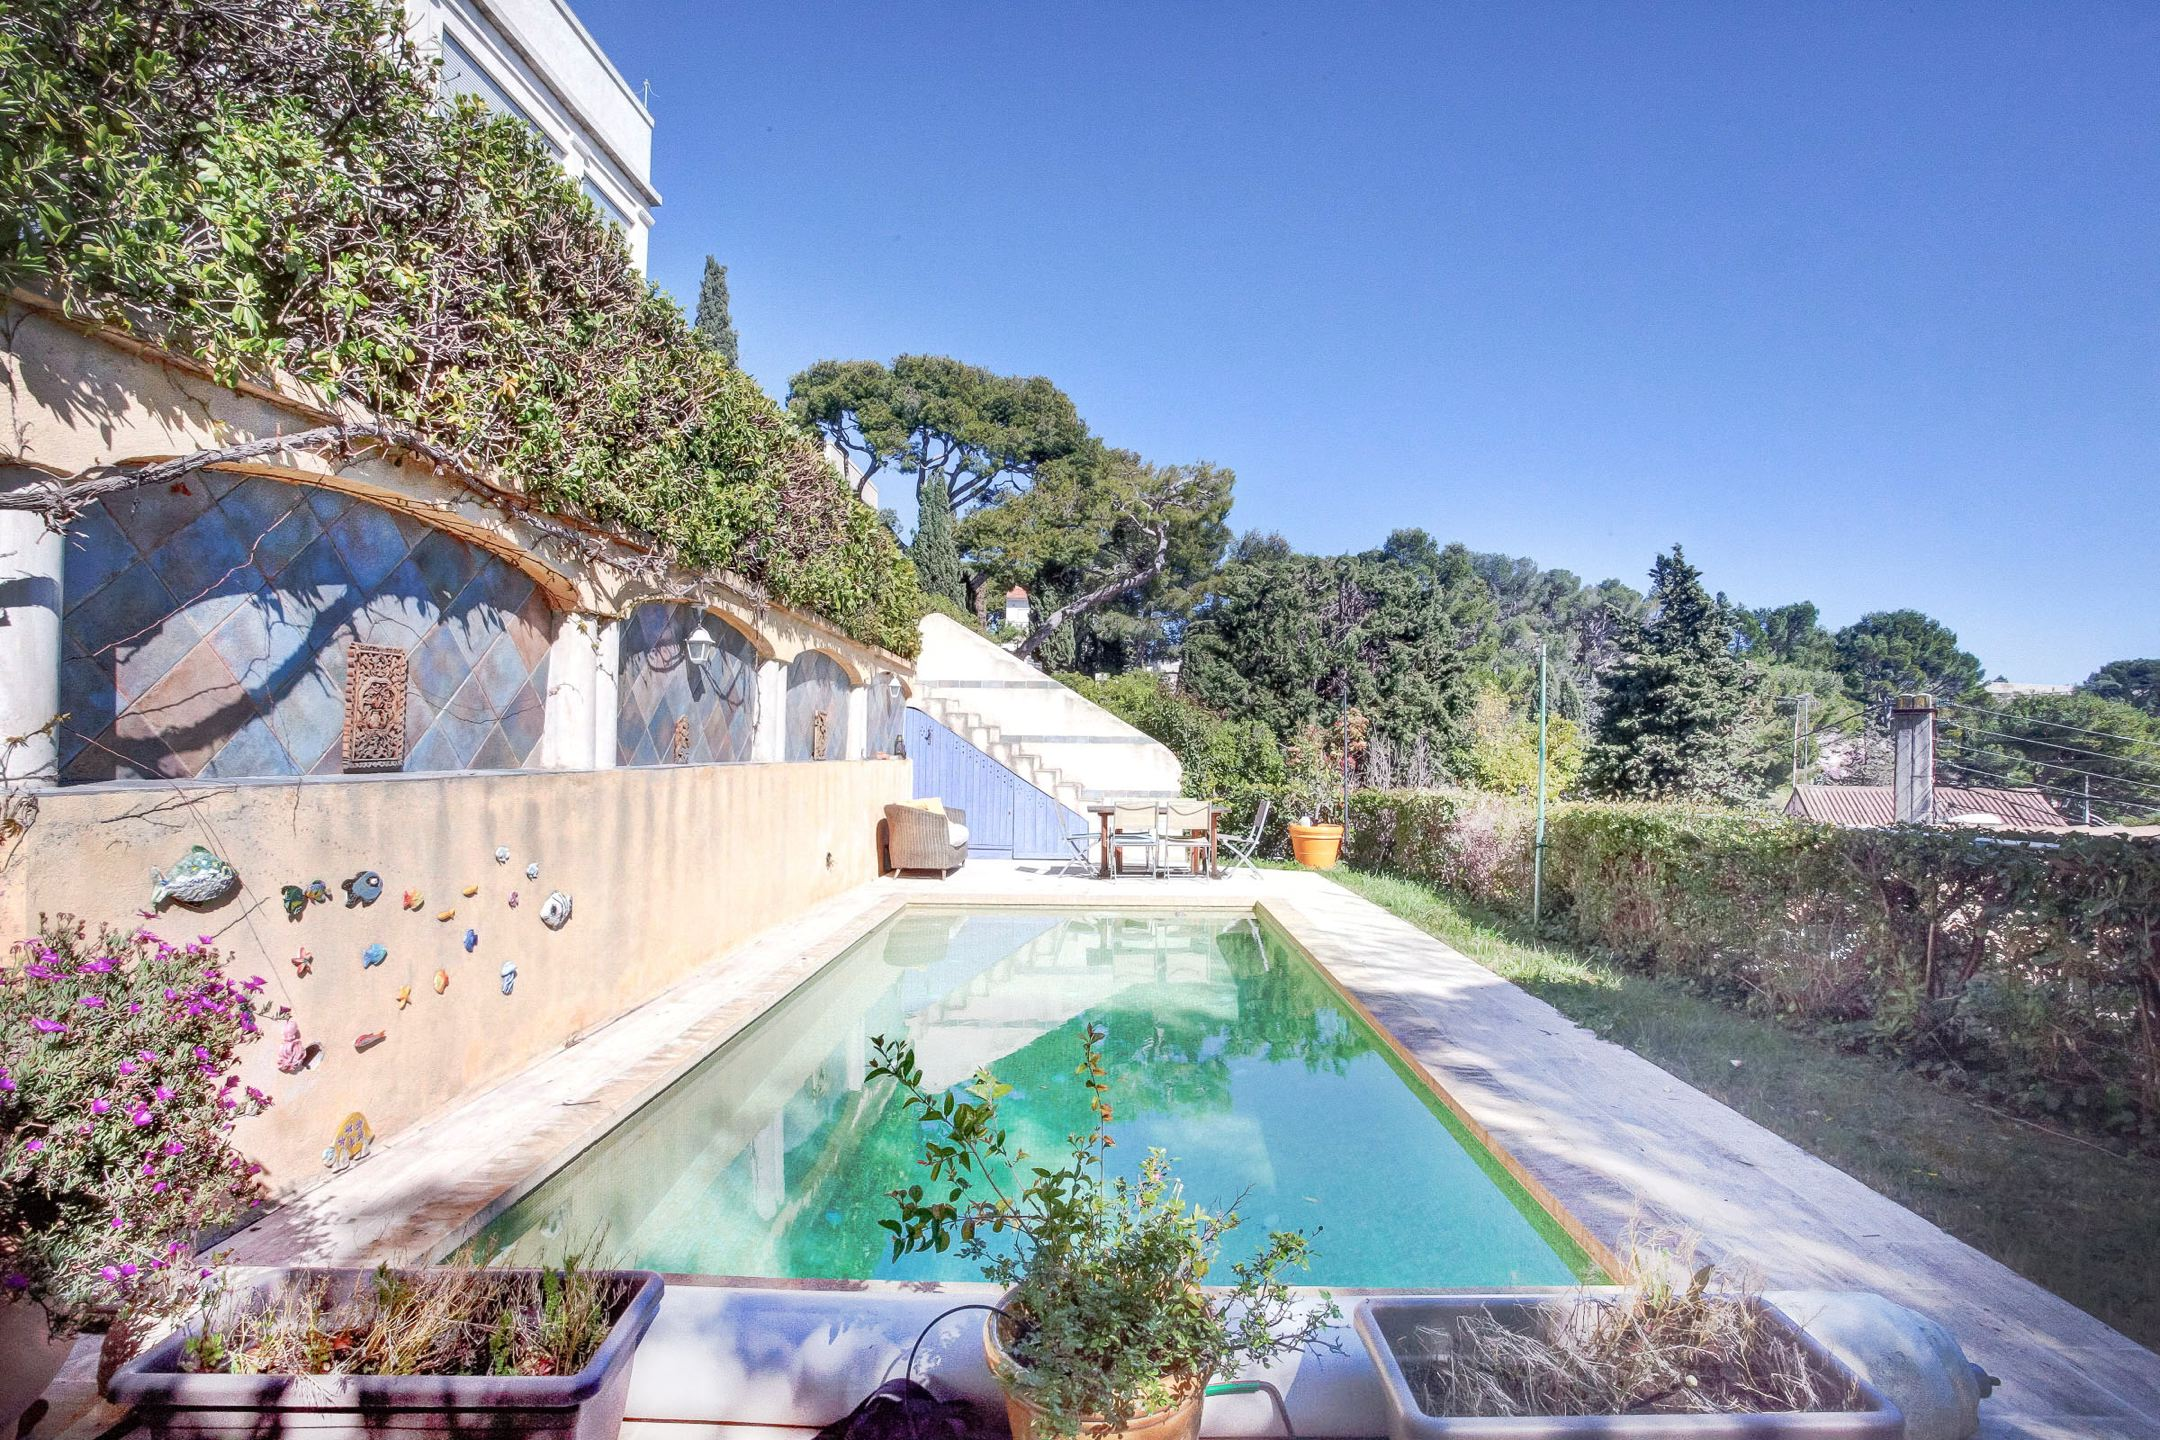 Ma terrasse marseille agence immobili re acheter - Amenagement piscine contemporaine marseille ...